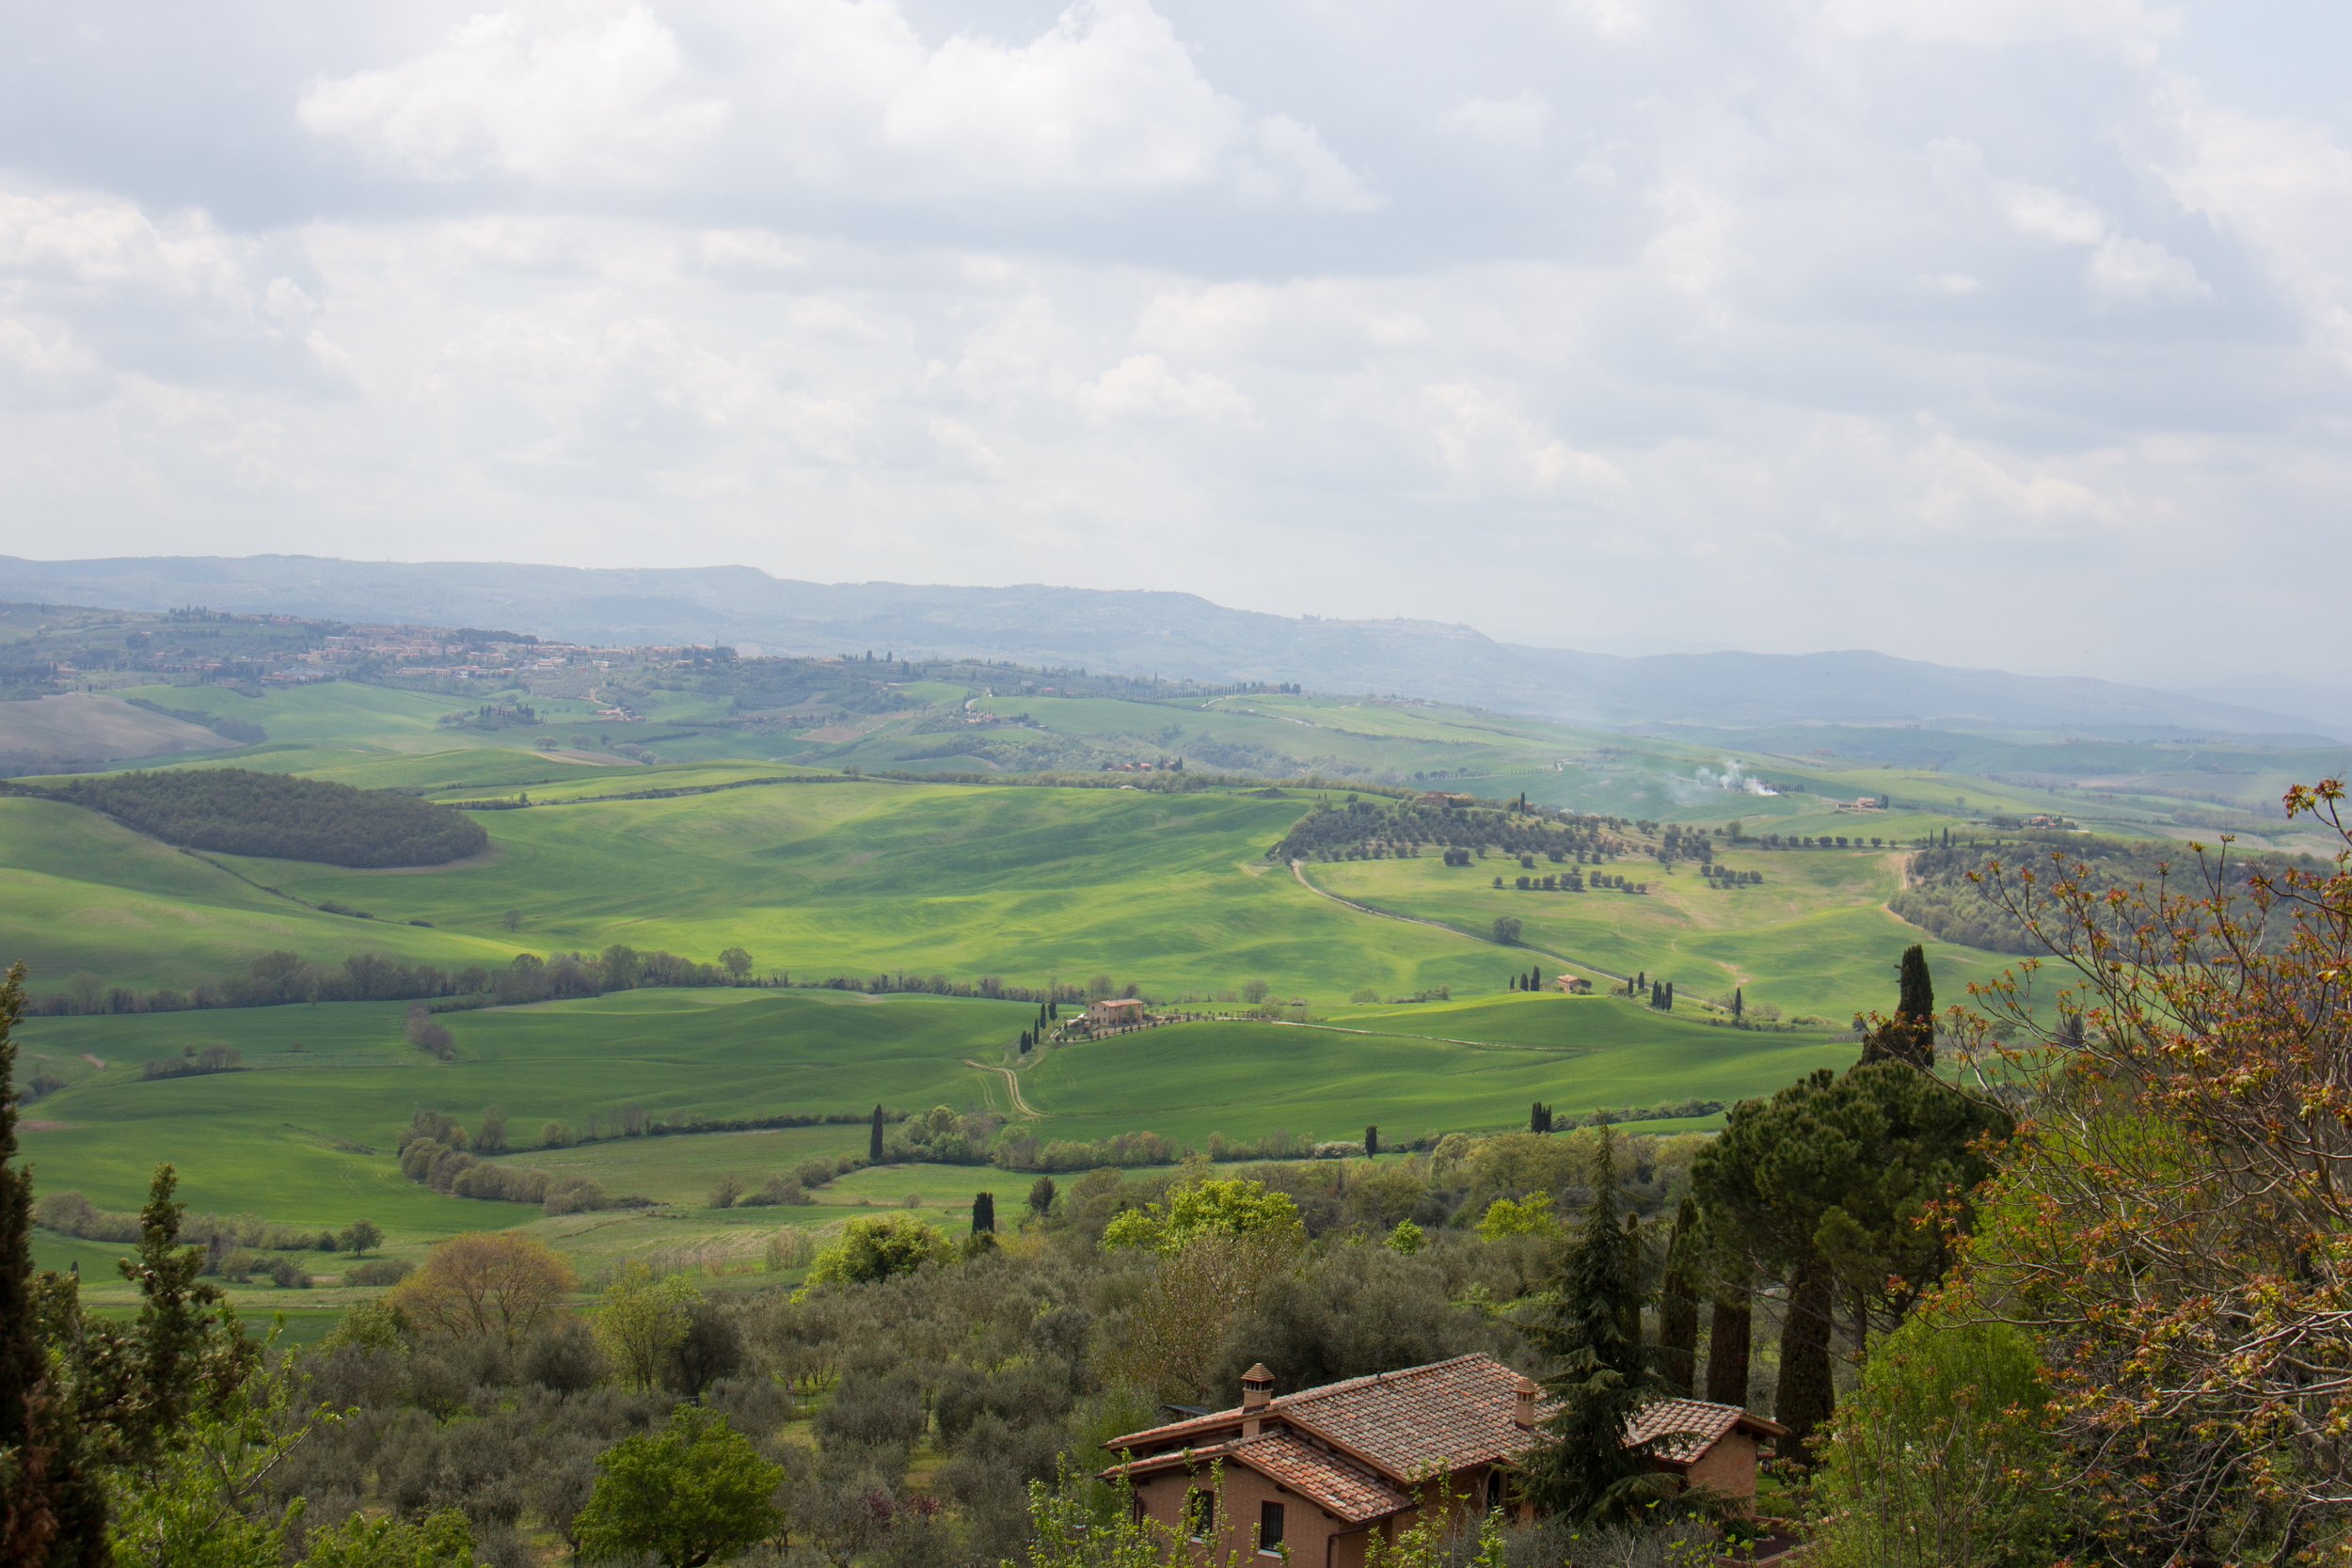 .....and Pienza!